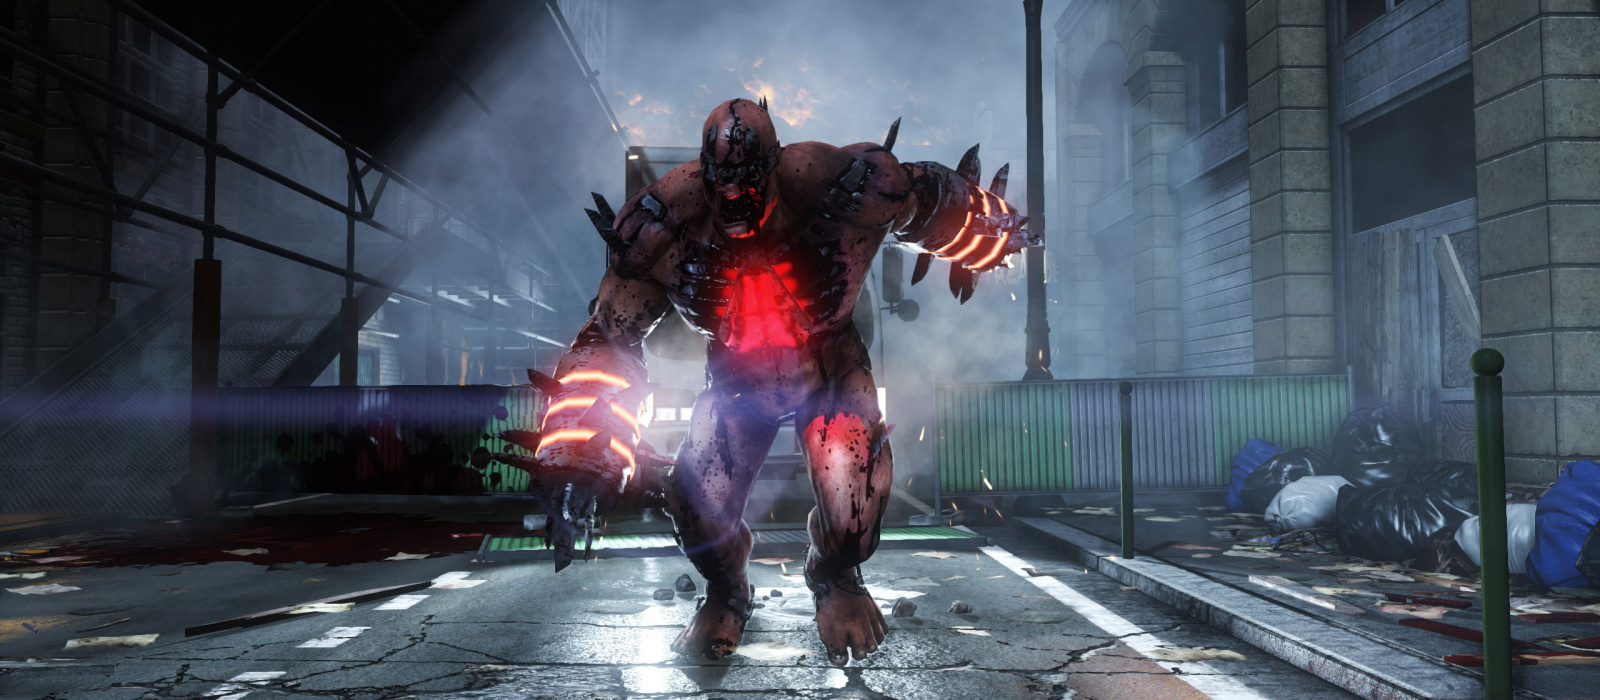 Custom maps in Killing Floor 2 - where to download, how to play online, how to invite friends